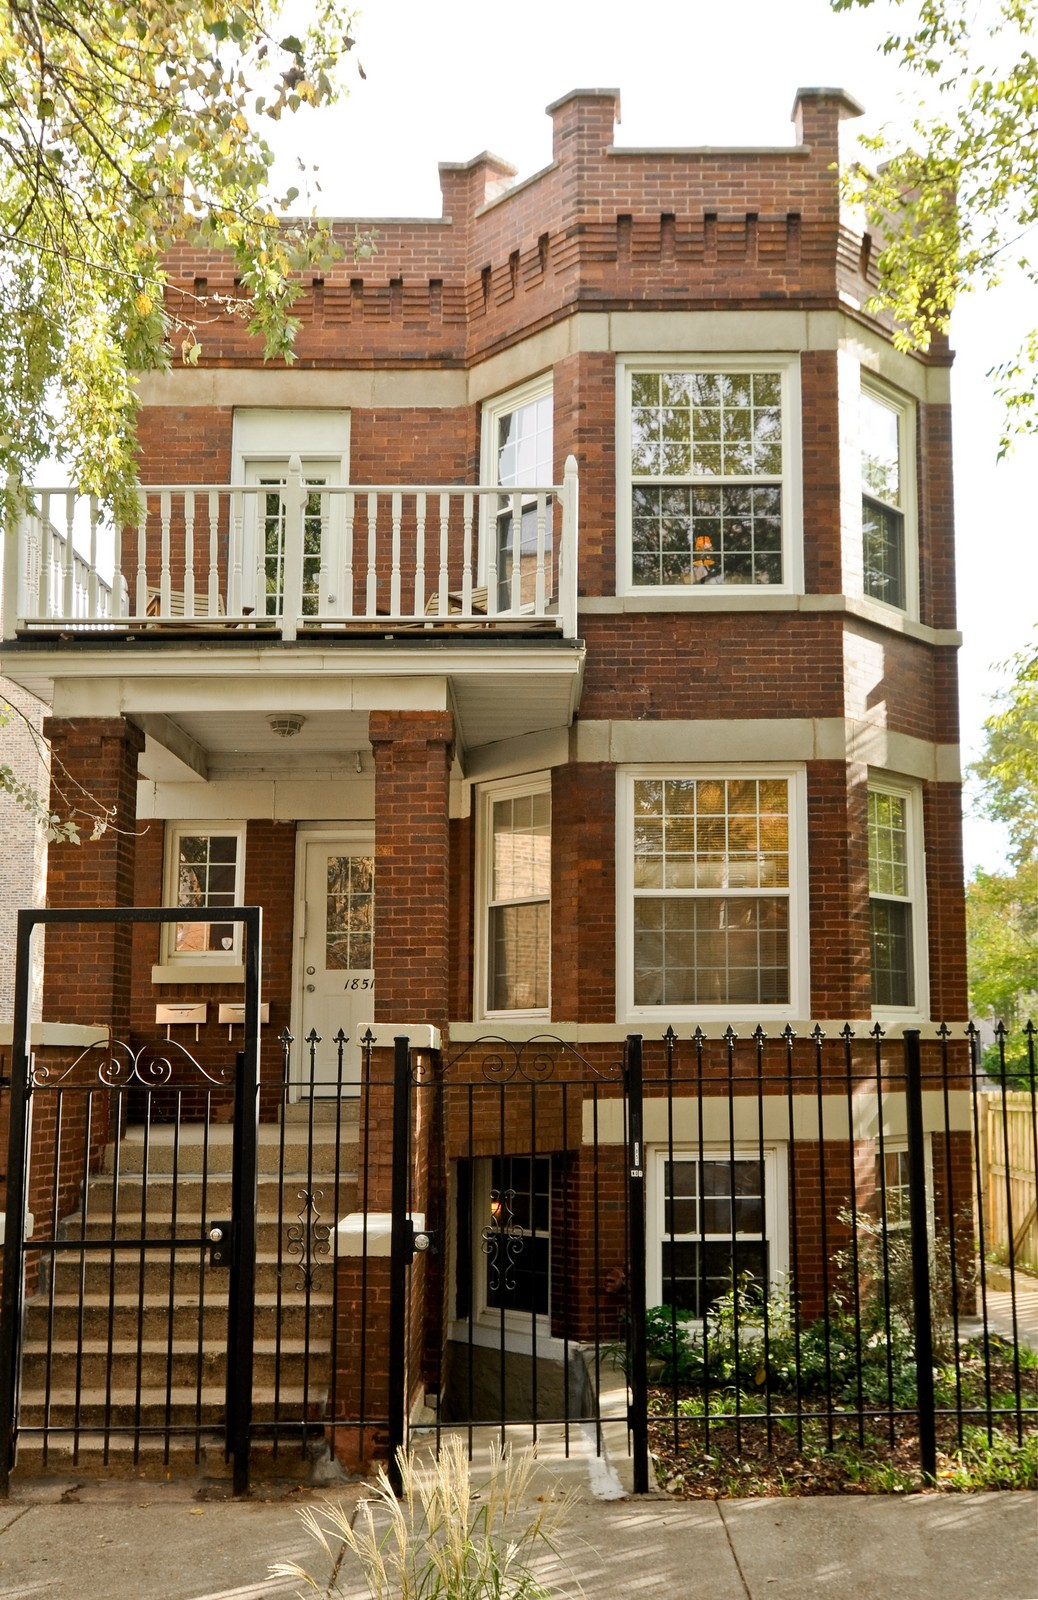 Real Estate Photography - 1851 N Whipple St, Unit 3, Chicago, IL, 60647 - Front View